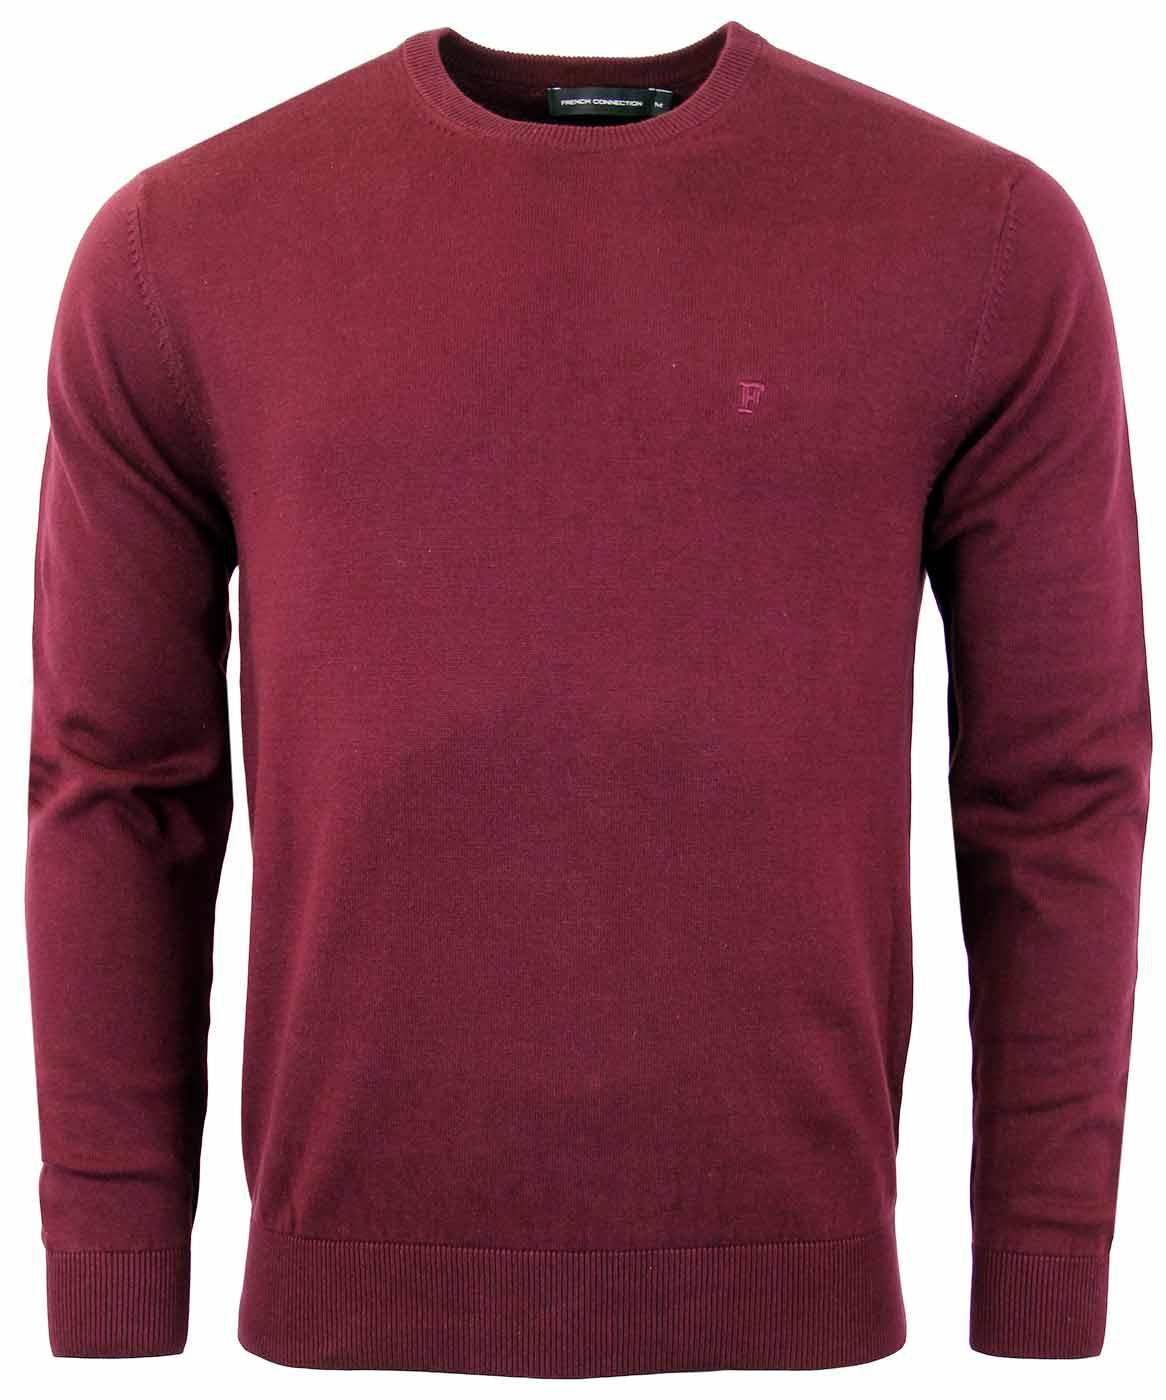 Auderly FRENCH CONNECTION Retro Crew Neck Jumper